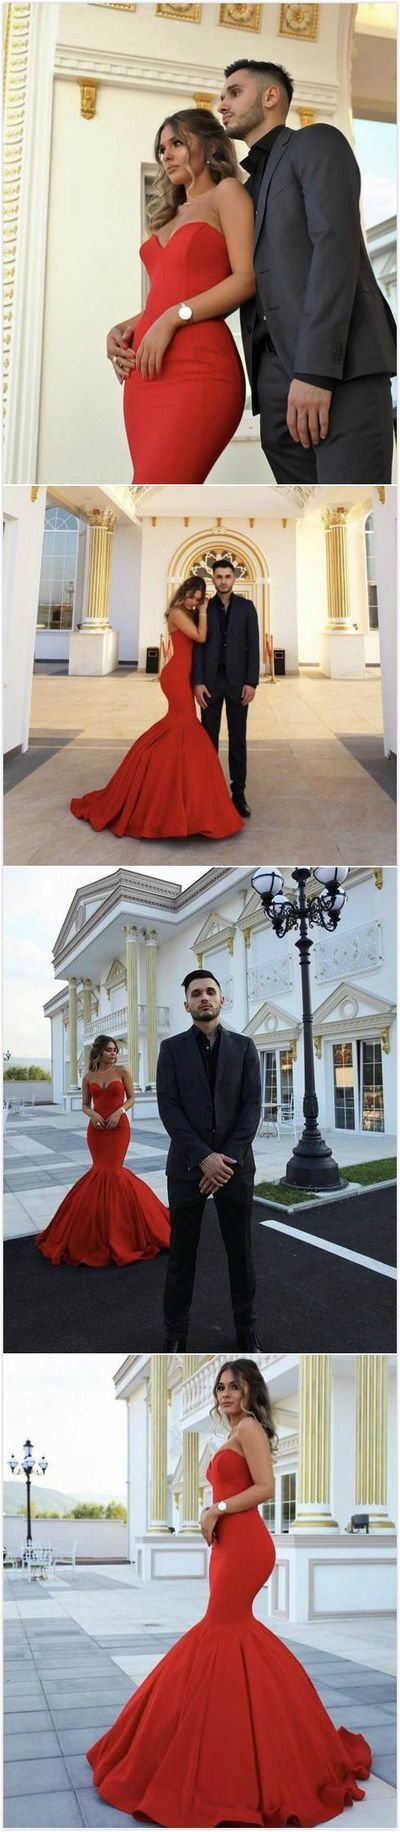 Red Chic Sweetheart Mermaid Prom Dress,Long Prom Dresses,Cheap Prom Dresses, Evening Dress Prom Gowns, Formal Women Dress